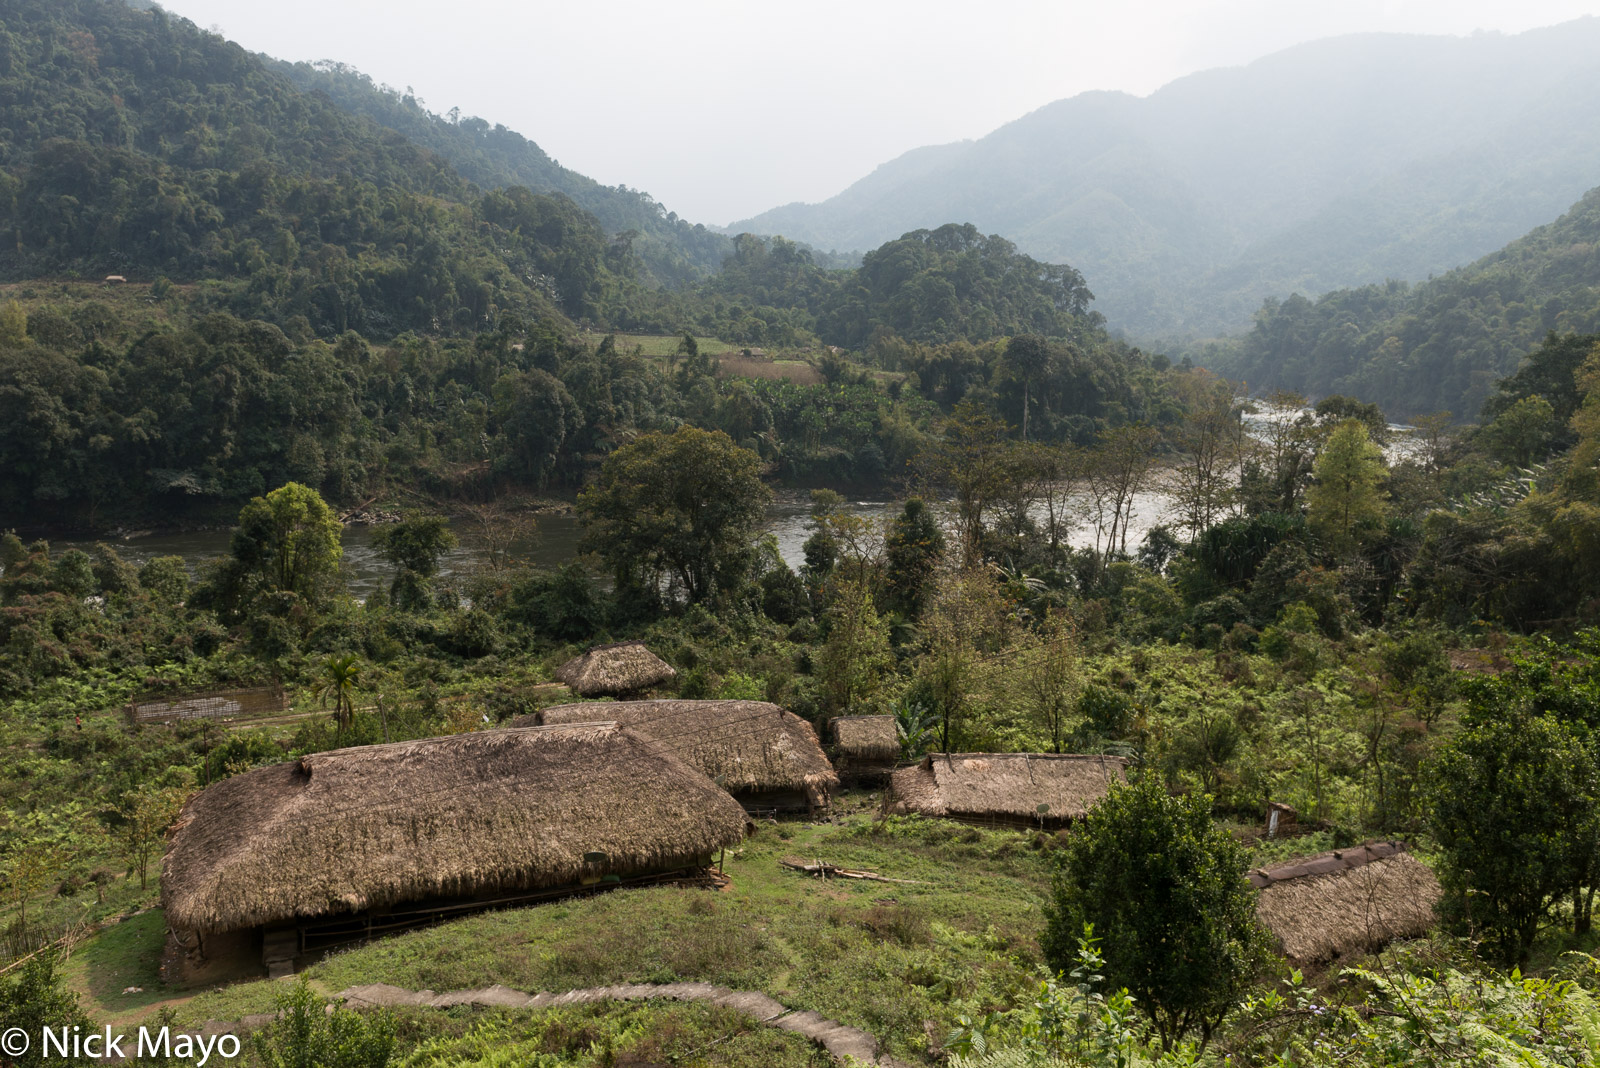 The thatched village of Thumbin in the Siyom valley.